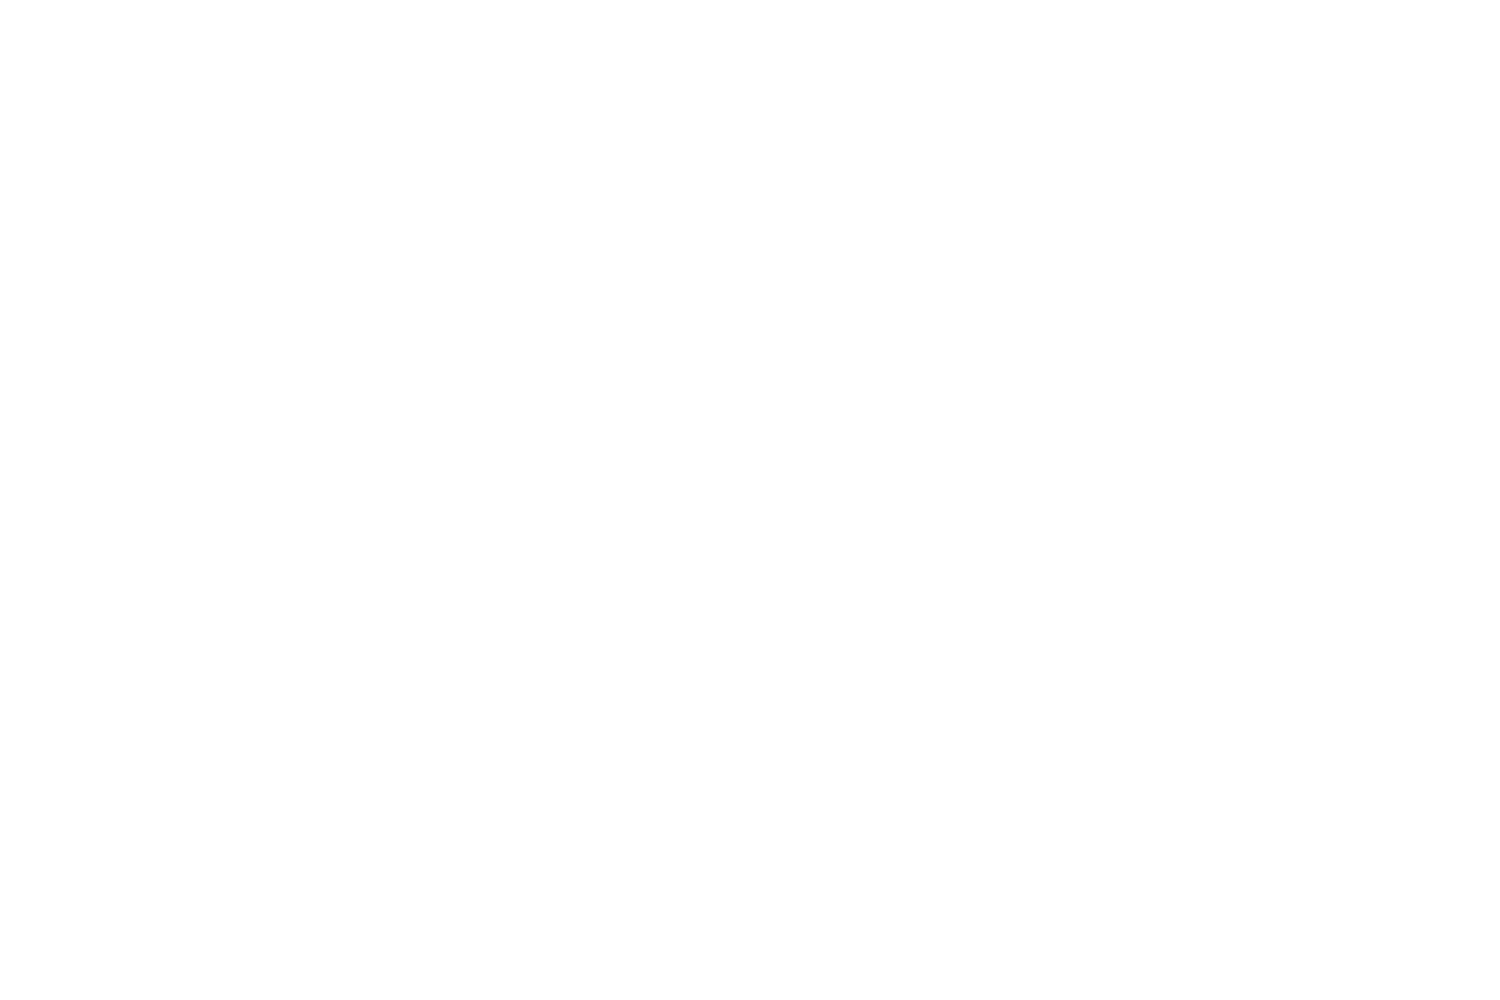 Jessica Reaves Photography